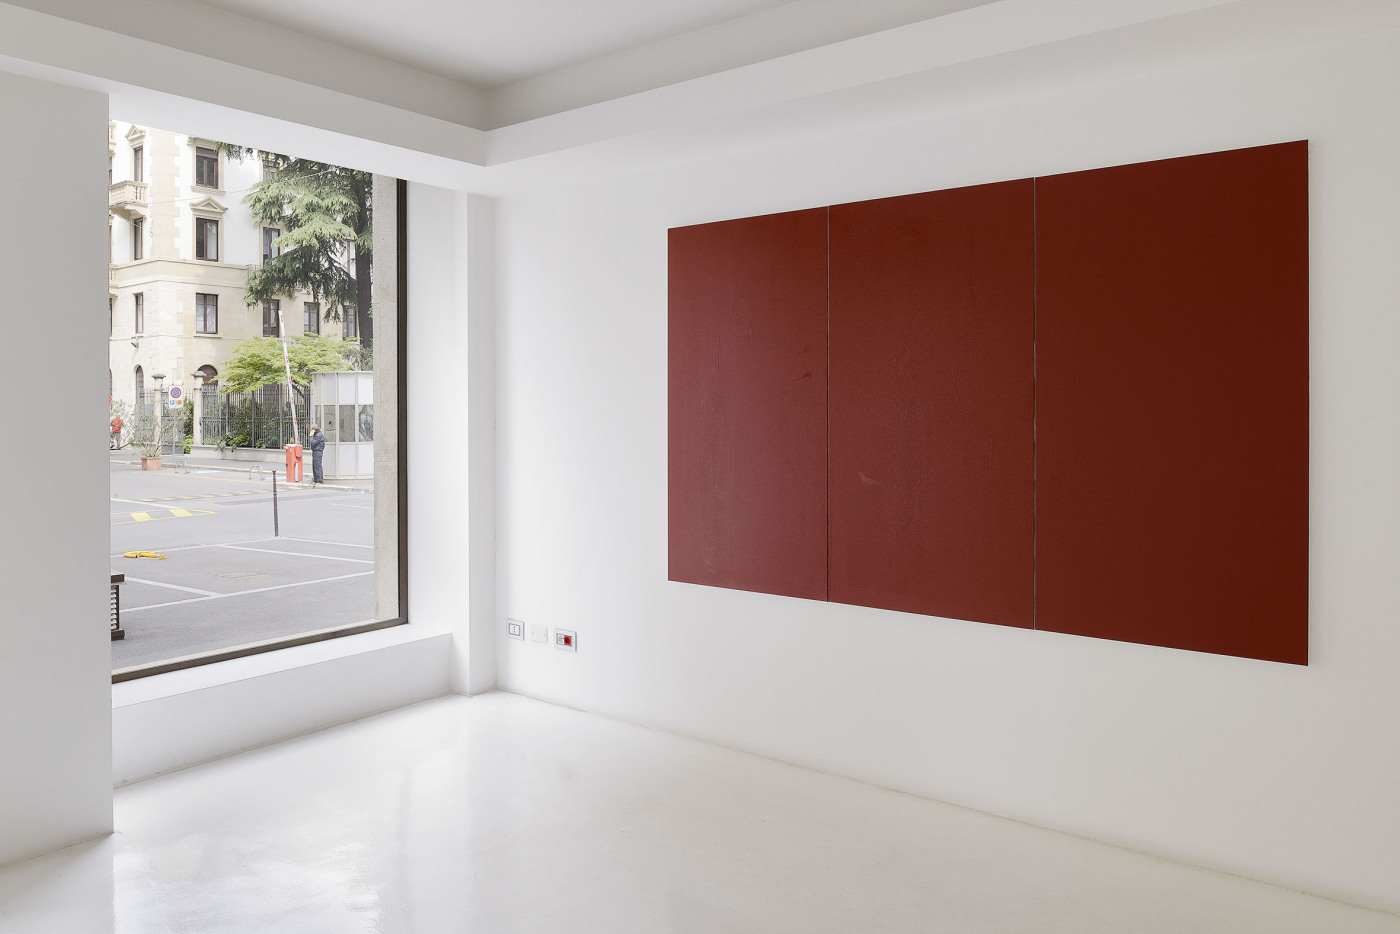 t twoninethree - T293-in-residence at Via Gabba 1, Milano - 1